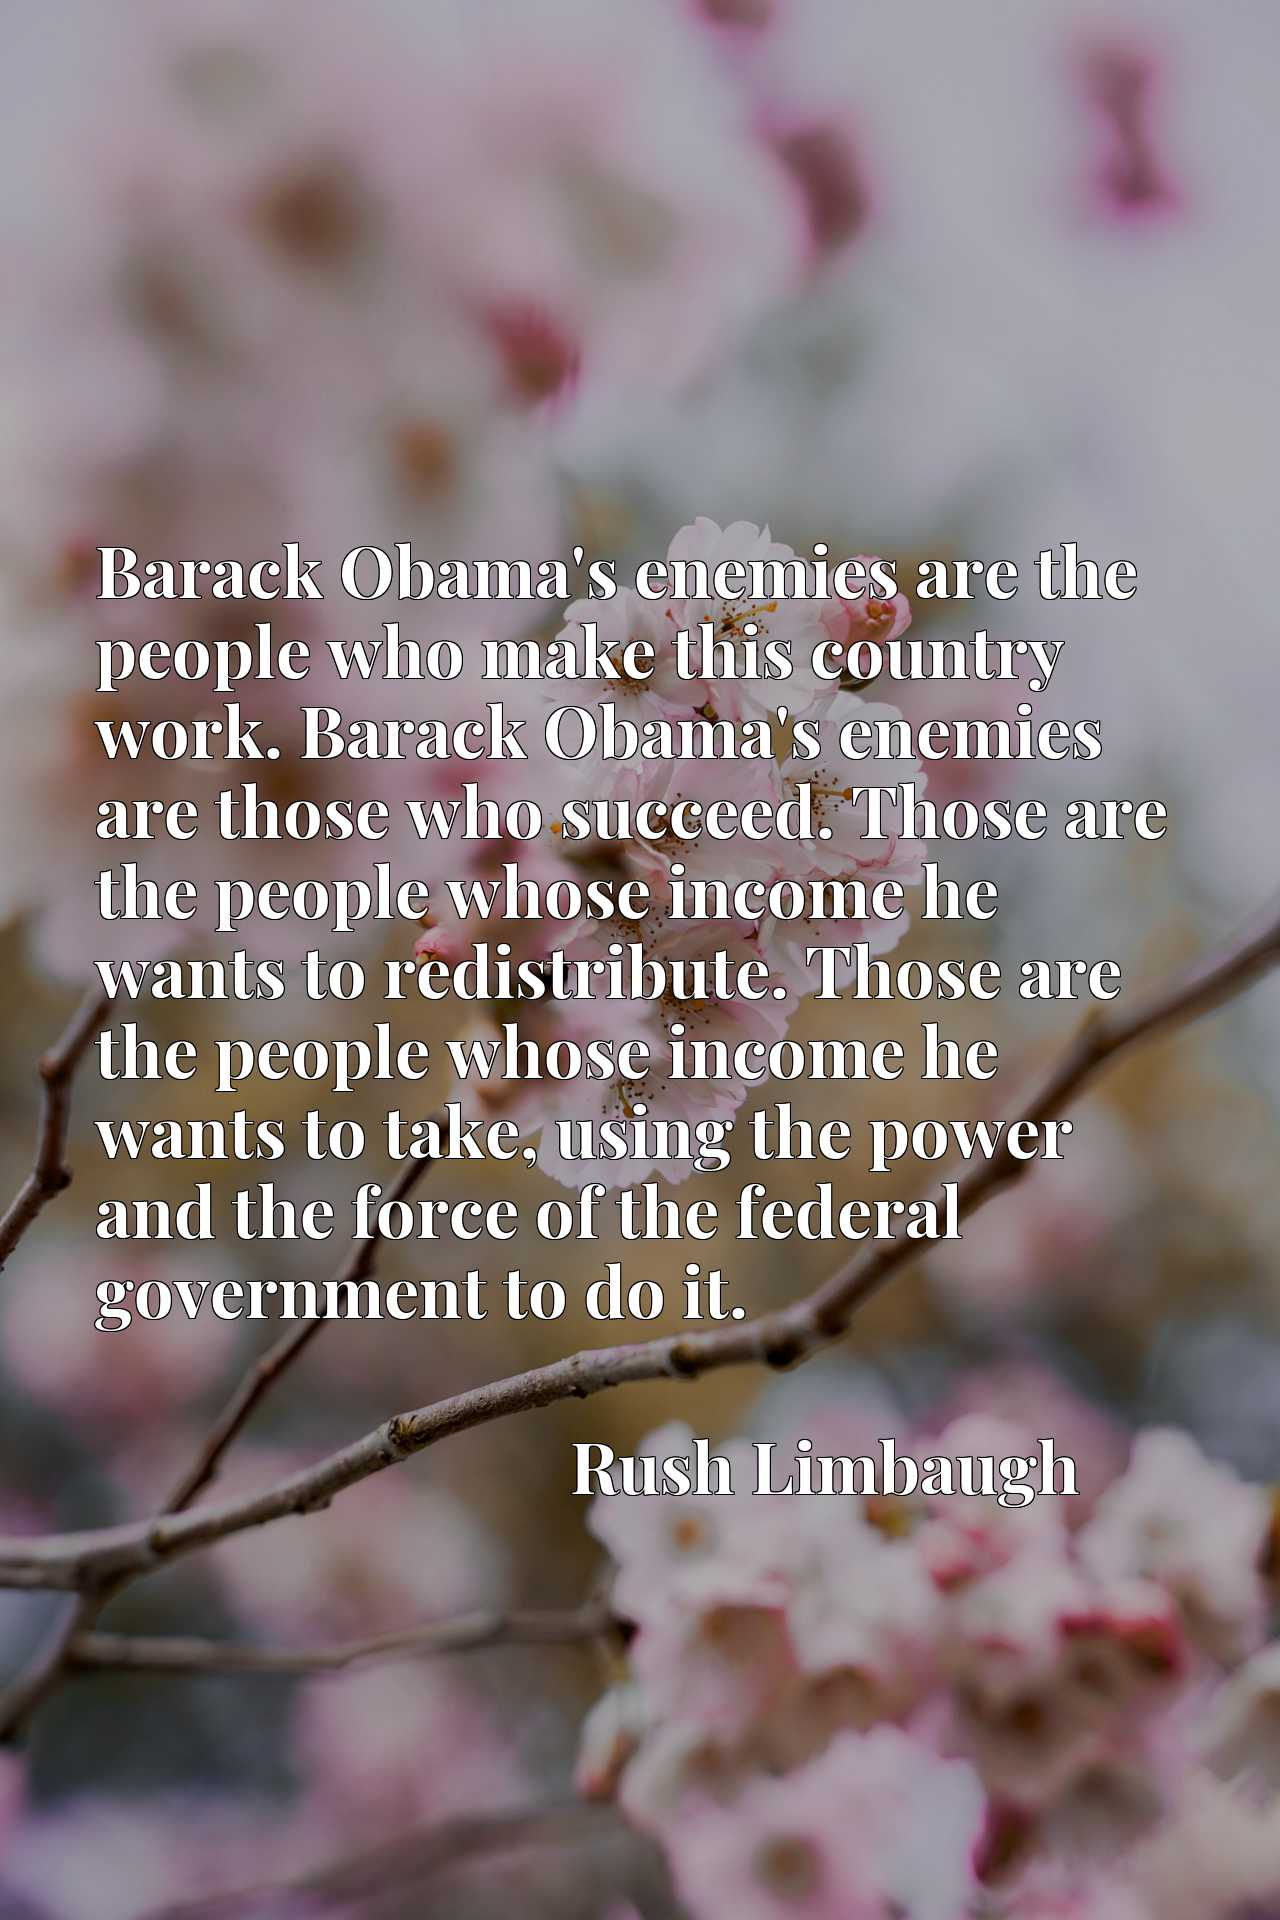 Barack Obama's enemies are the people who make this country work. Barack Obama's enemies are those who succeed. Those are the people whose income he wants to redistribute. Those are the people whose income he wants to take, using the power and the force of the federal government to do it.